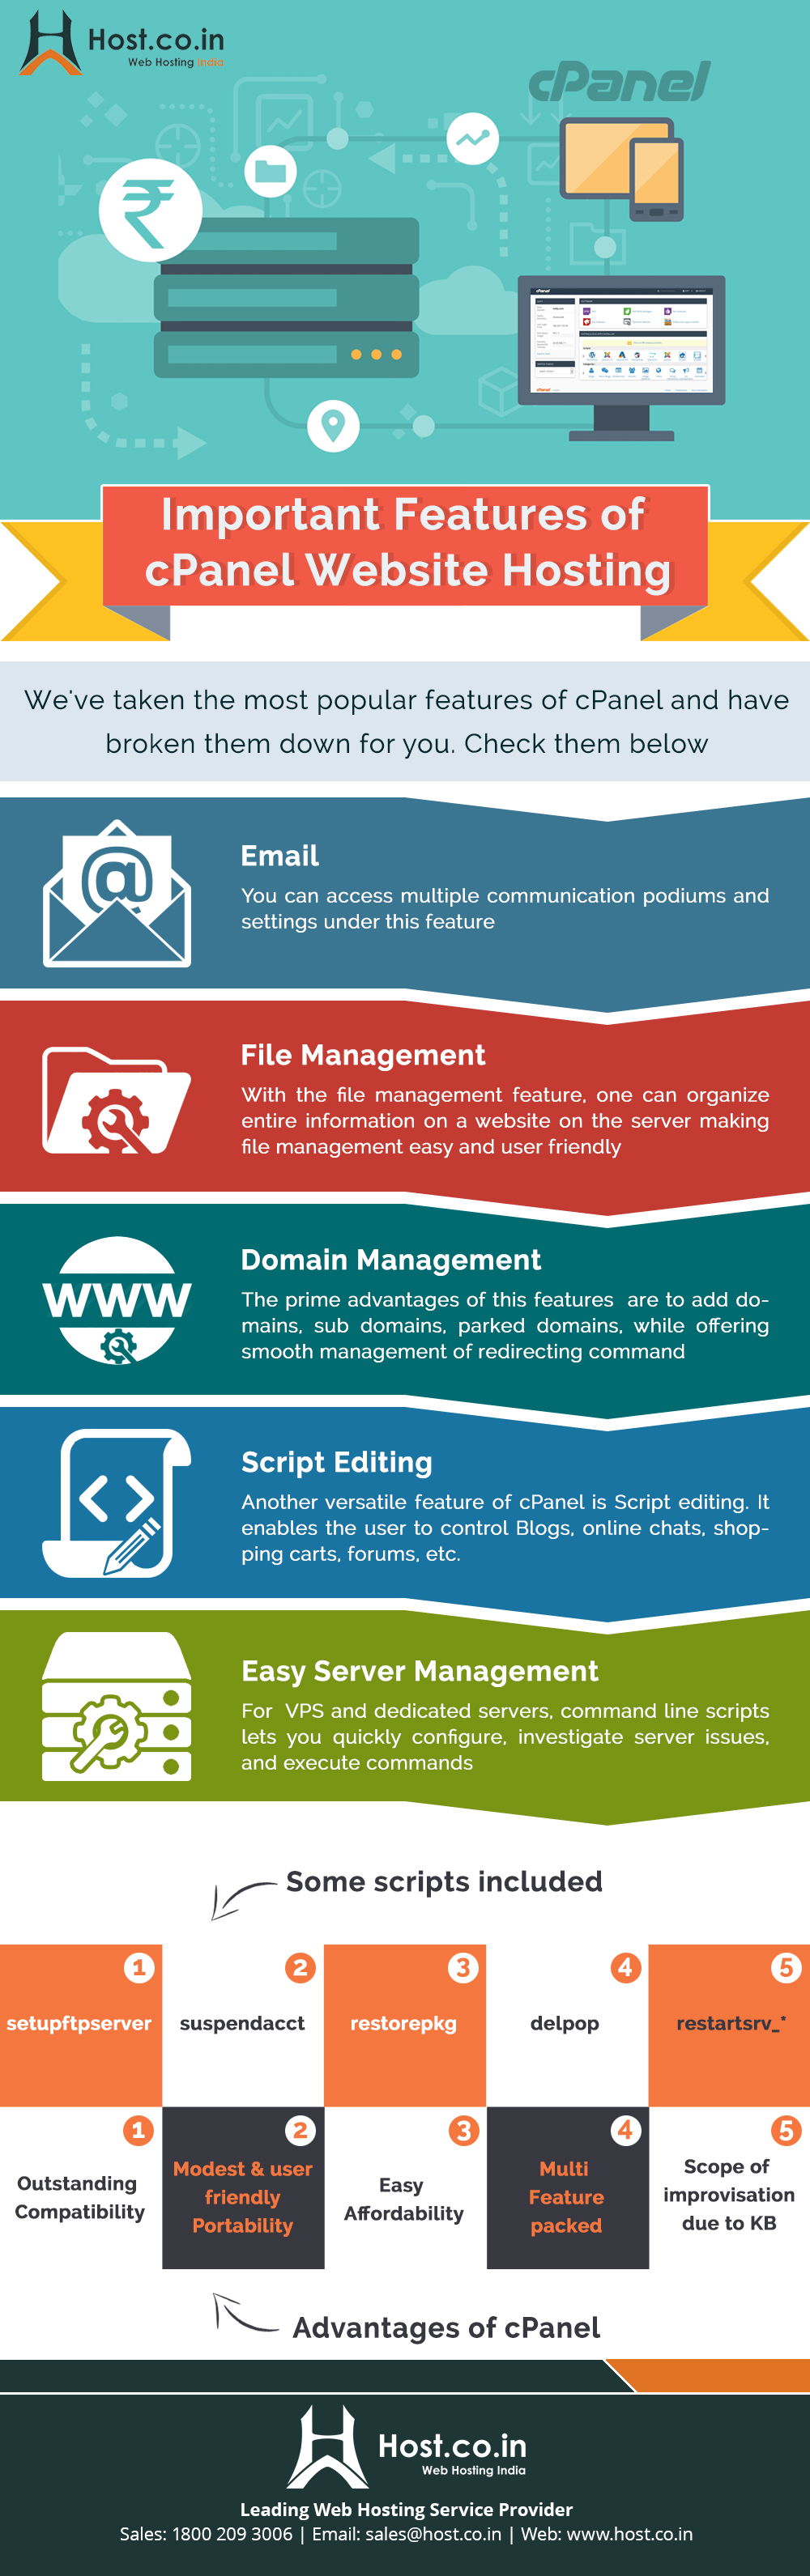 7 Important Features Of cPanel Website Hosting